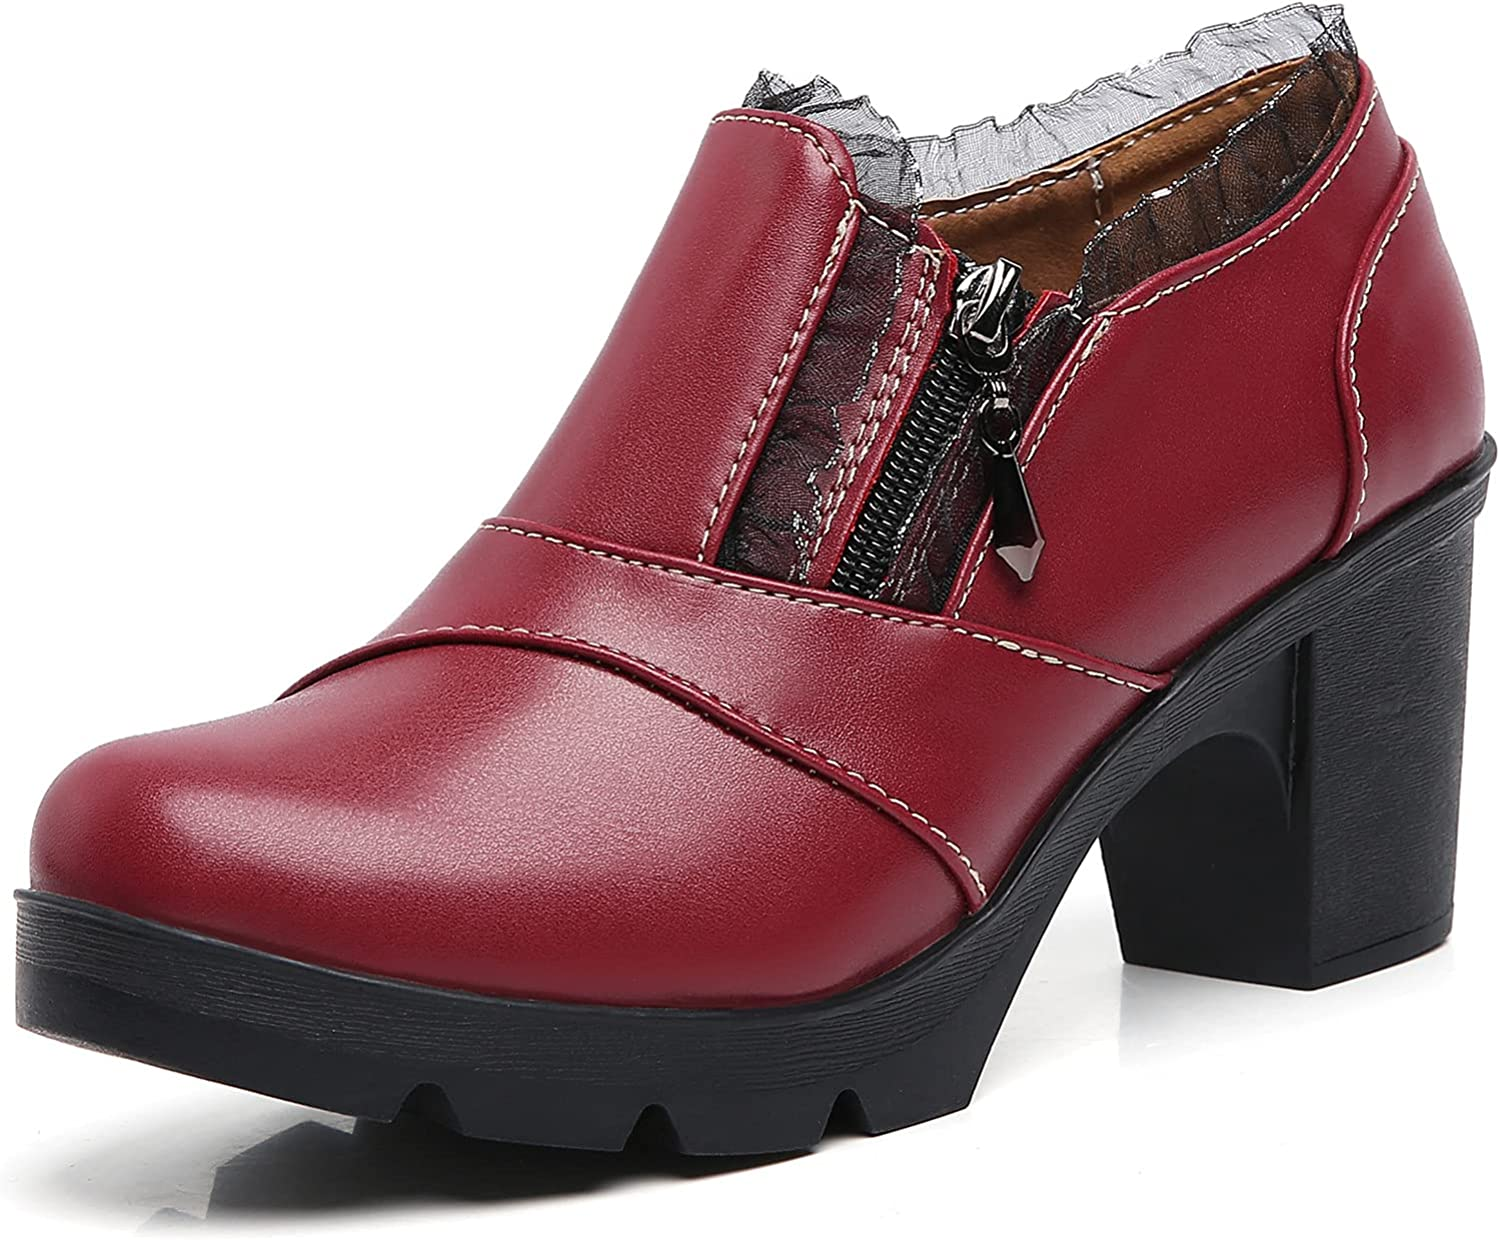 Limited Special Price DADAWEN Popular popular Women's Casual Zipper Lace Square Toe Platform Mid-Heel